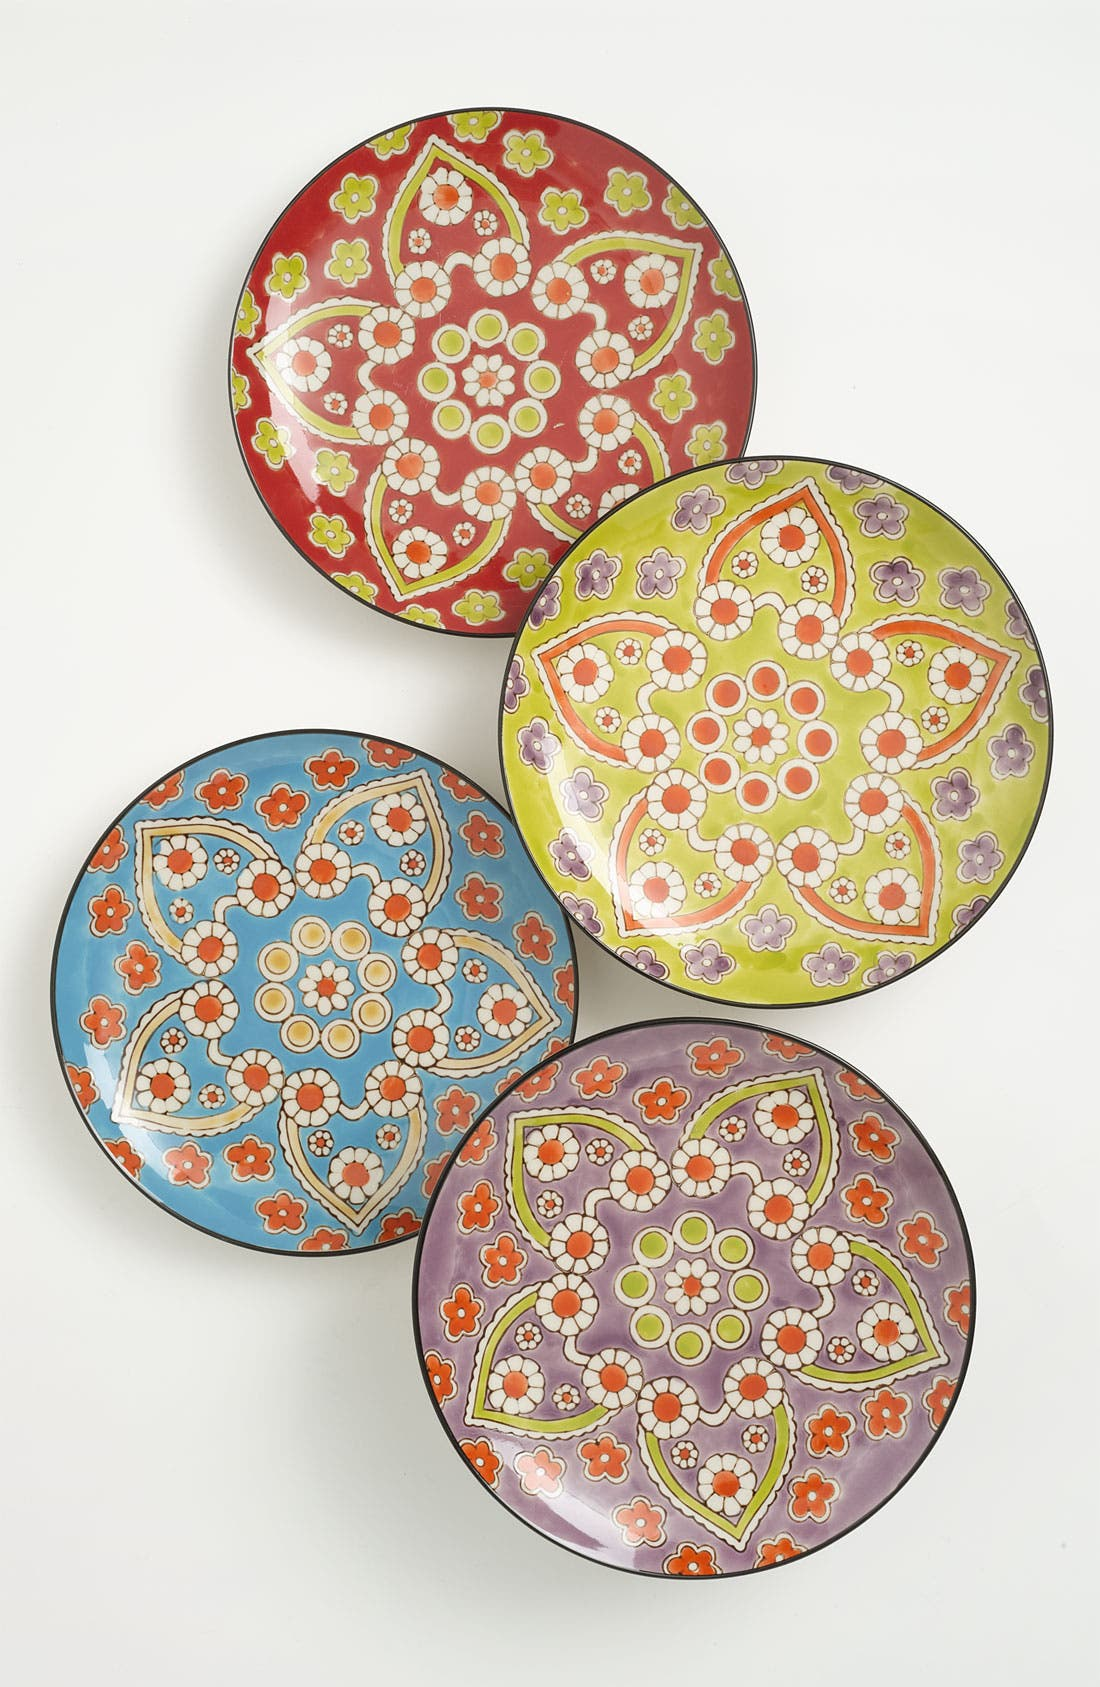 Alternate Image 1 Selected - Hand-Painted 'Lotus' Dessert Plates (Set of 4)